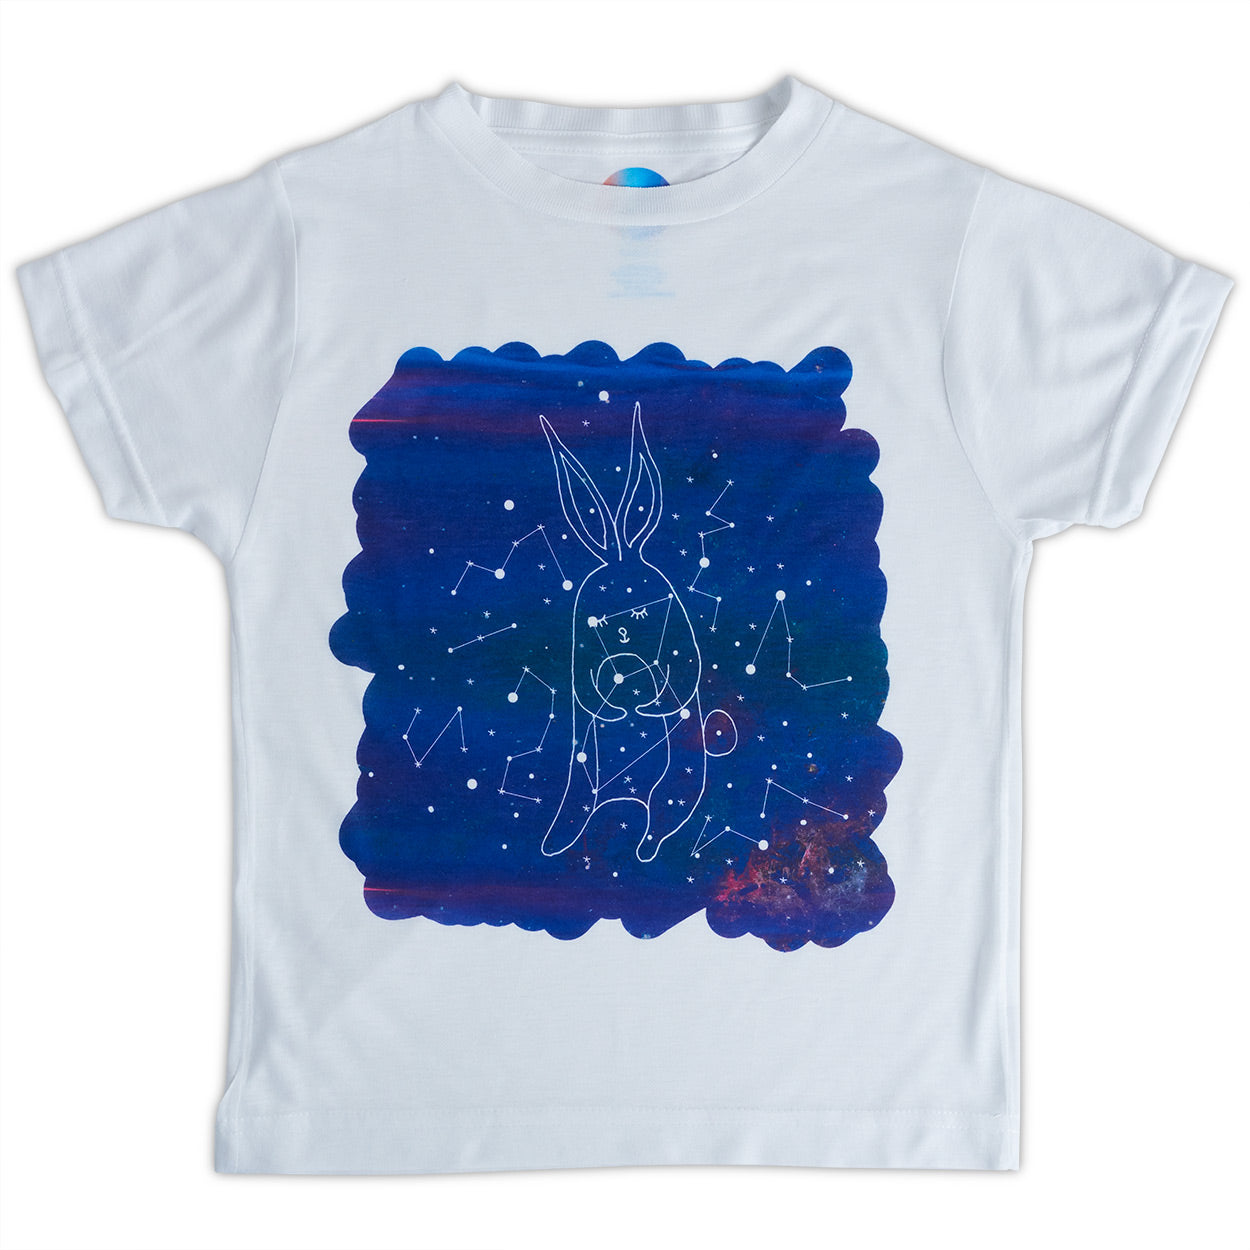 Kids Rabbit Graphic Tshirt Size Xs L White Purple Unisex Cosmos Lepus Constellations Sunpoplife